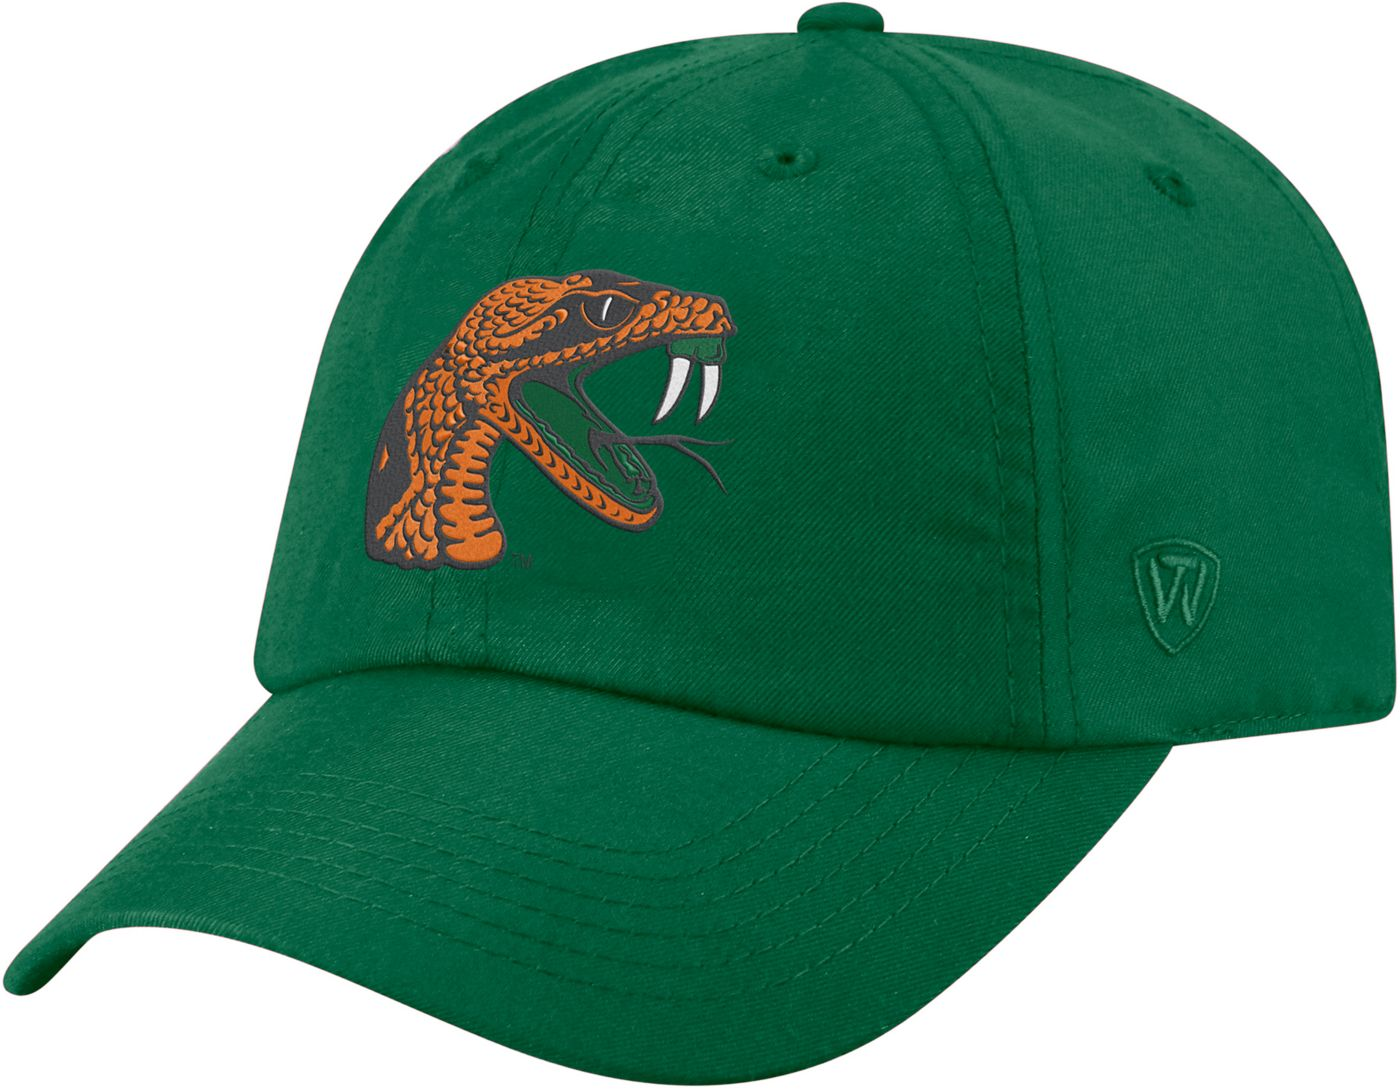 Top of the World Men's Florida A&M Rattlers Green Staple Adjustable Hat